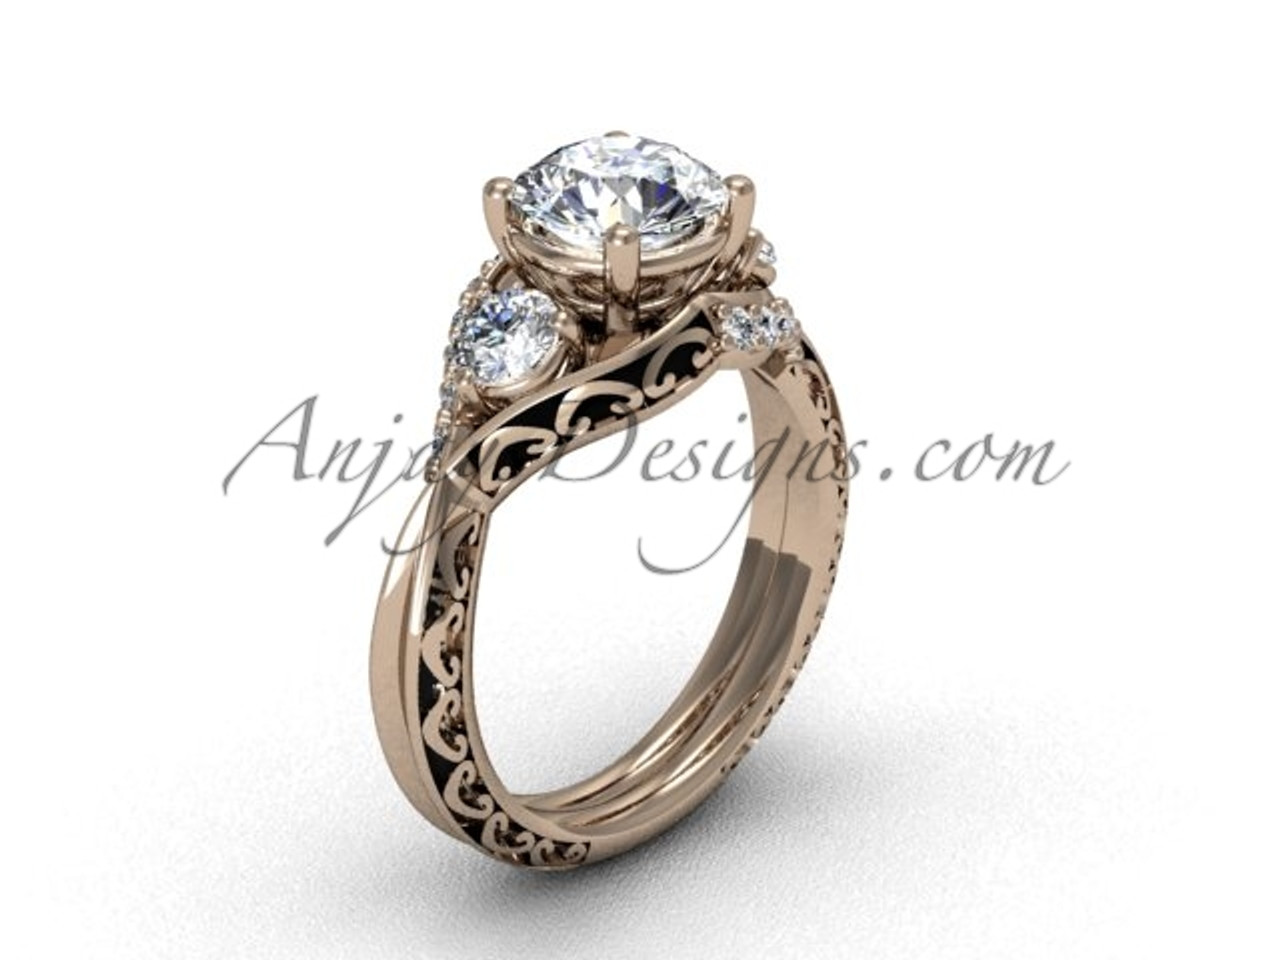 Unique Wedding Ring.Moissanite Engagement Ring 14kt Rose Gold Beautiful Bridal Rings Wedding Ring For Women Sgt624